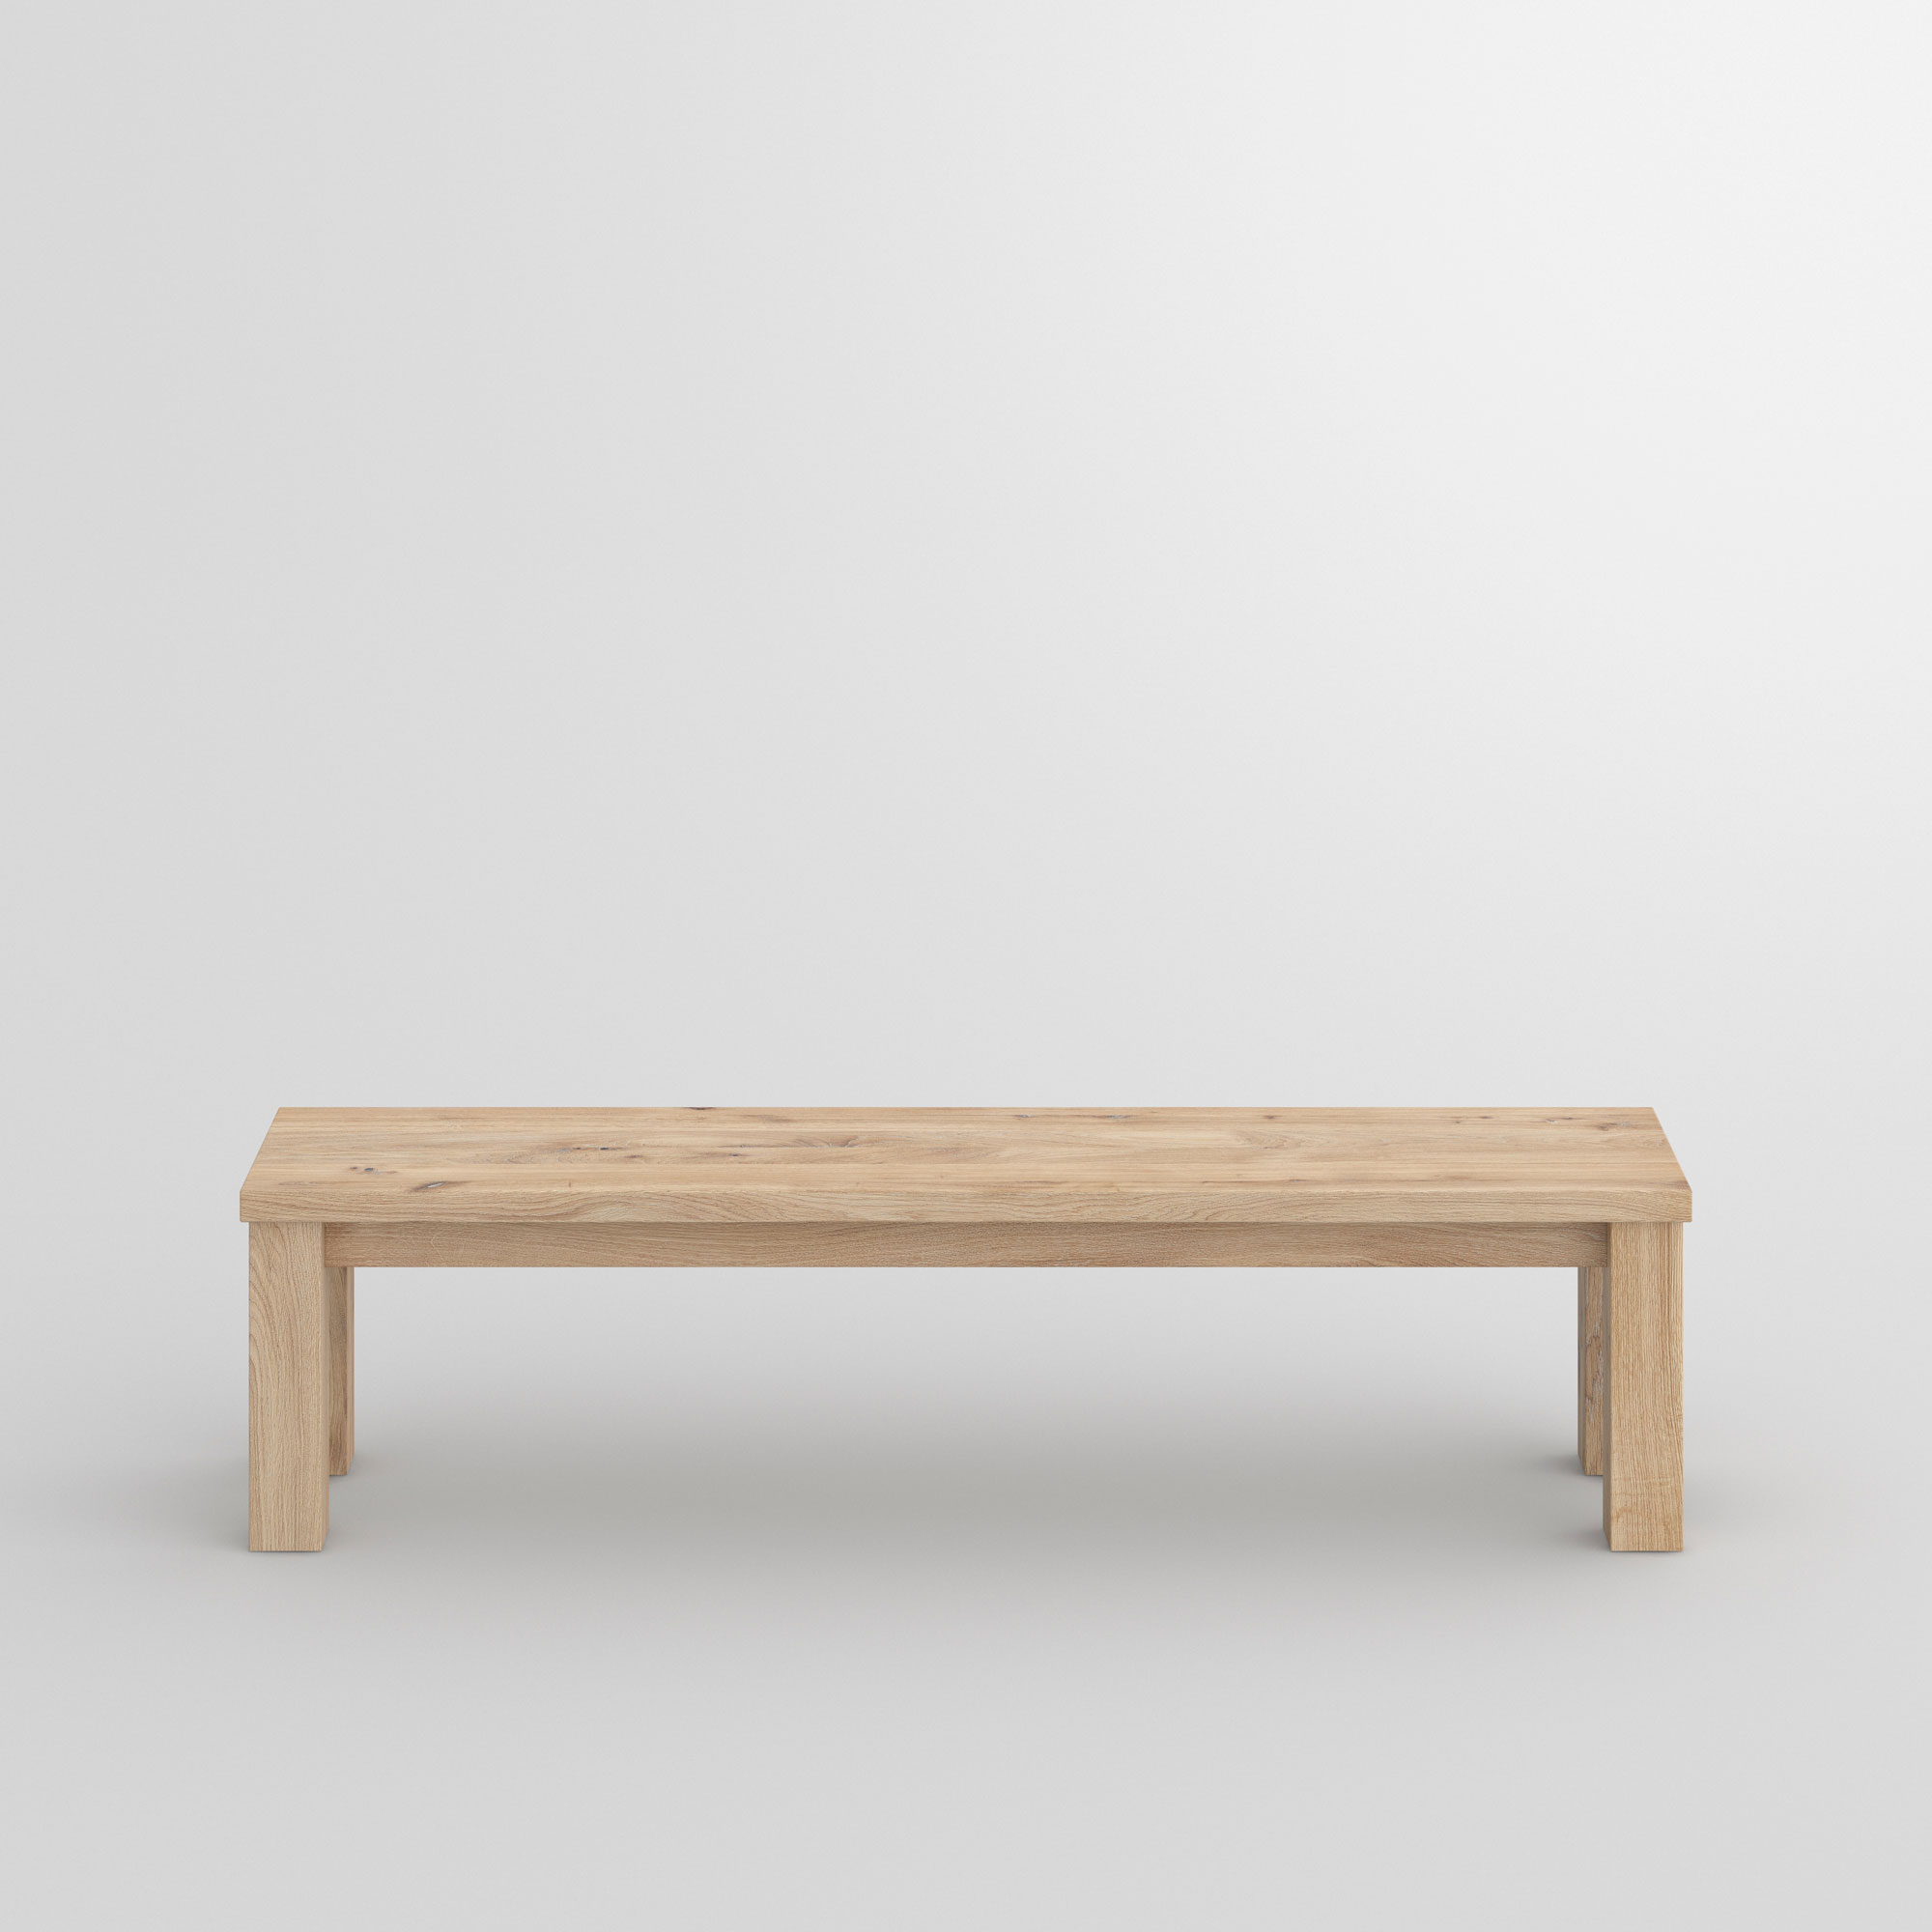 Tailor-Made Wood Bench FORTE 4 cam2 custom made in solid wood by vitamin design